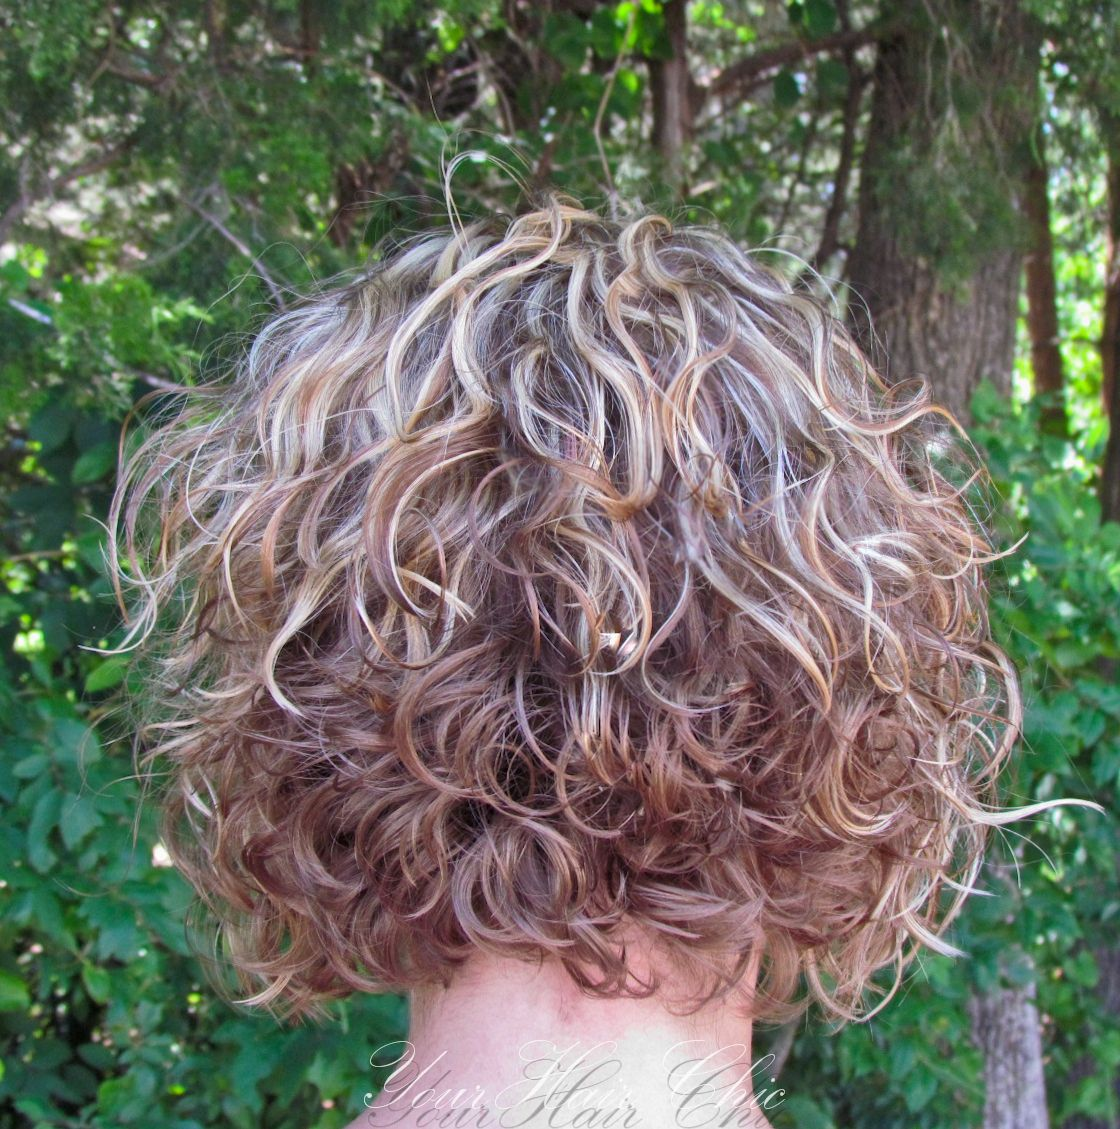 short haircuts for permed hair best 25 permed hairstyles ideas on 5289 | 4562e4bcbf660a50d6760d881264c4c1